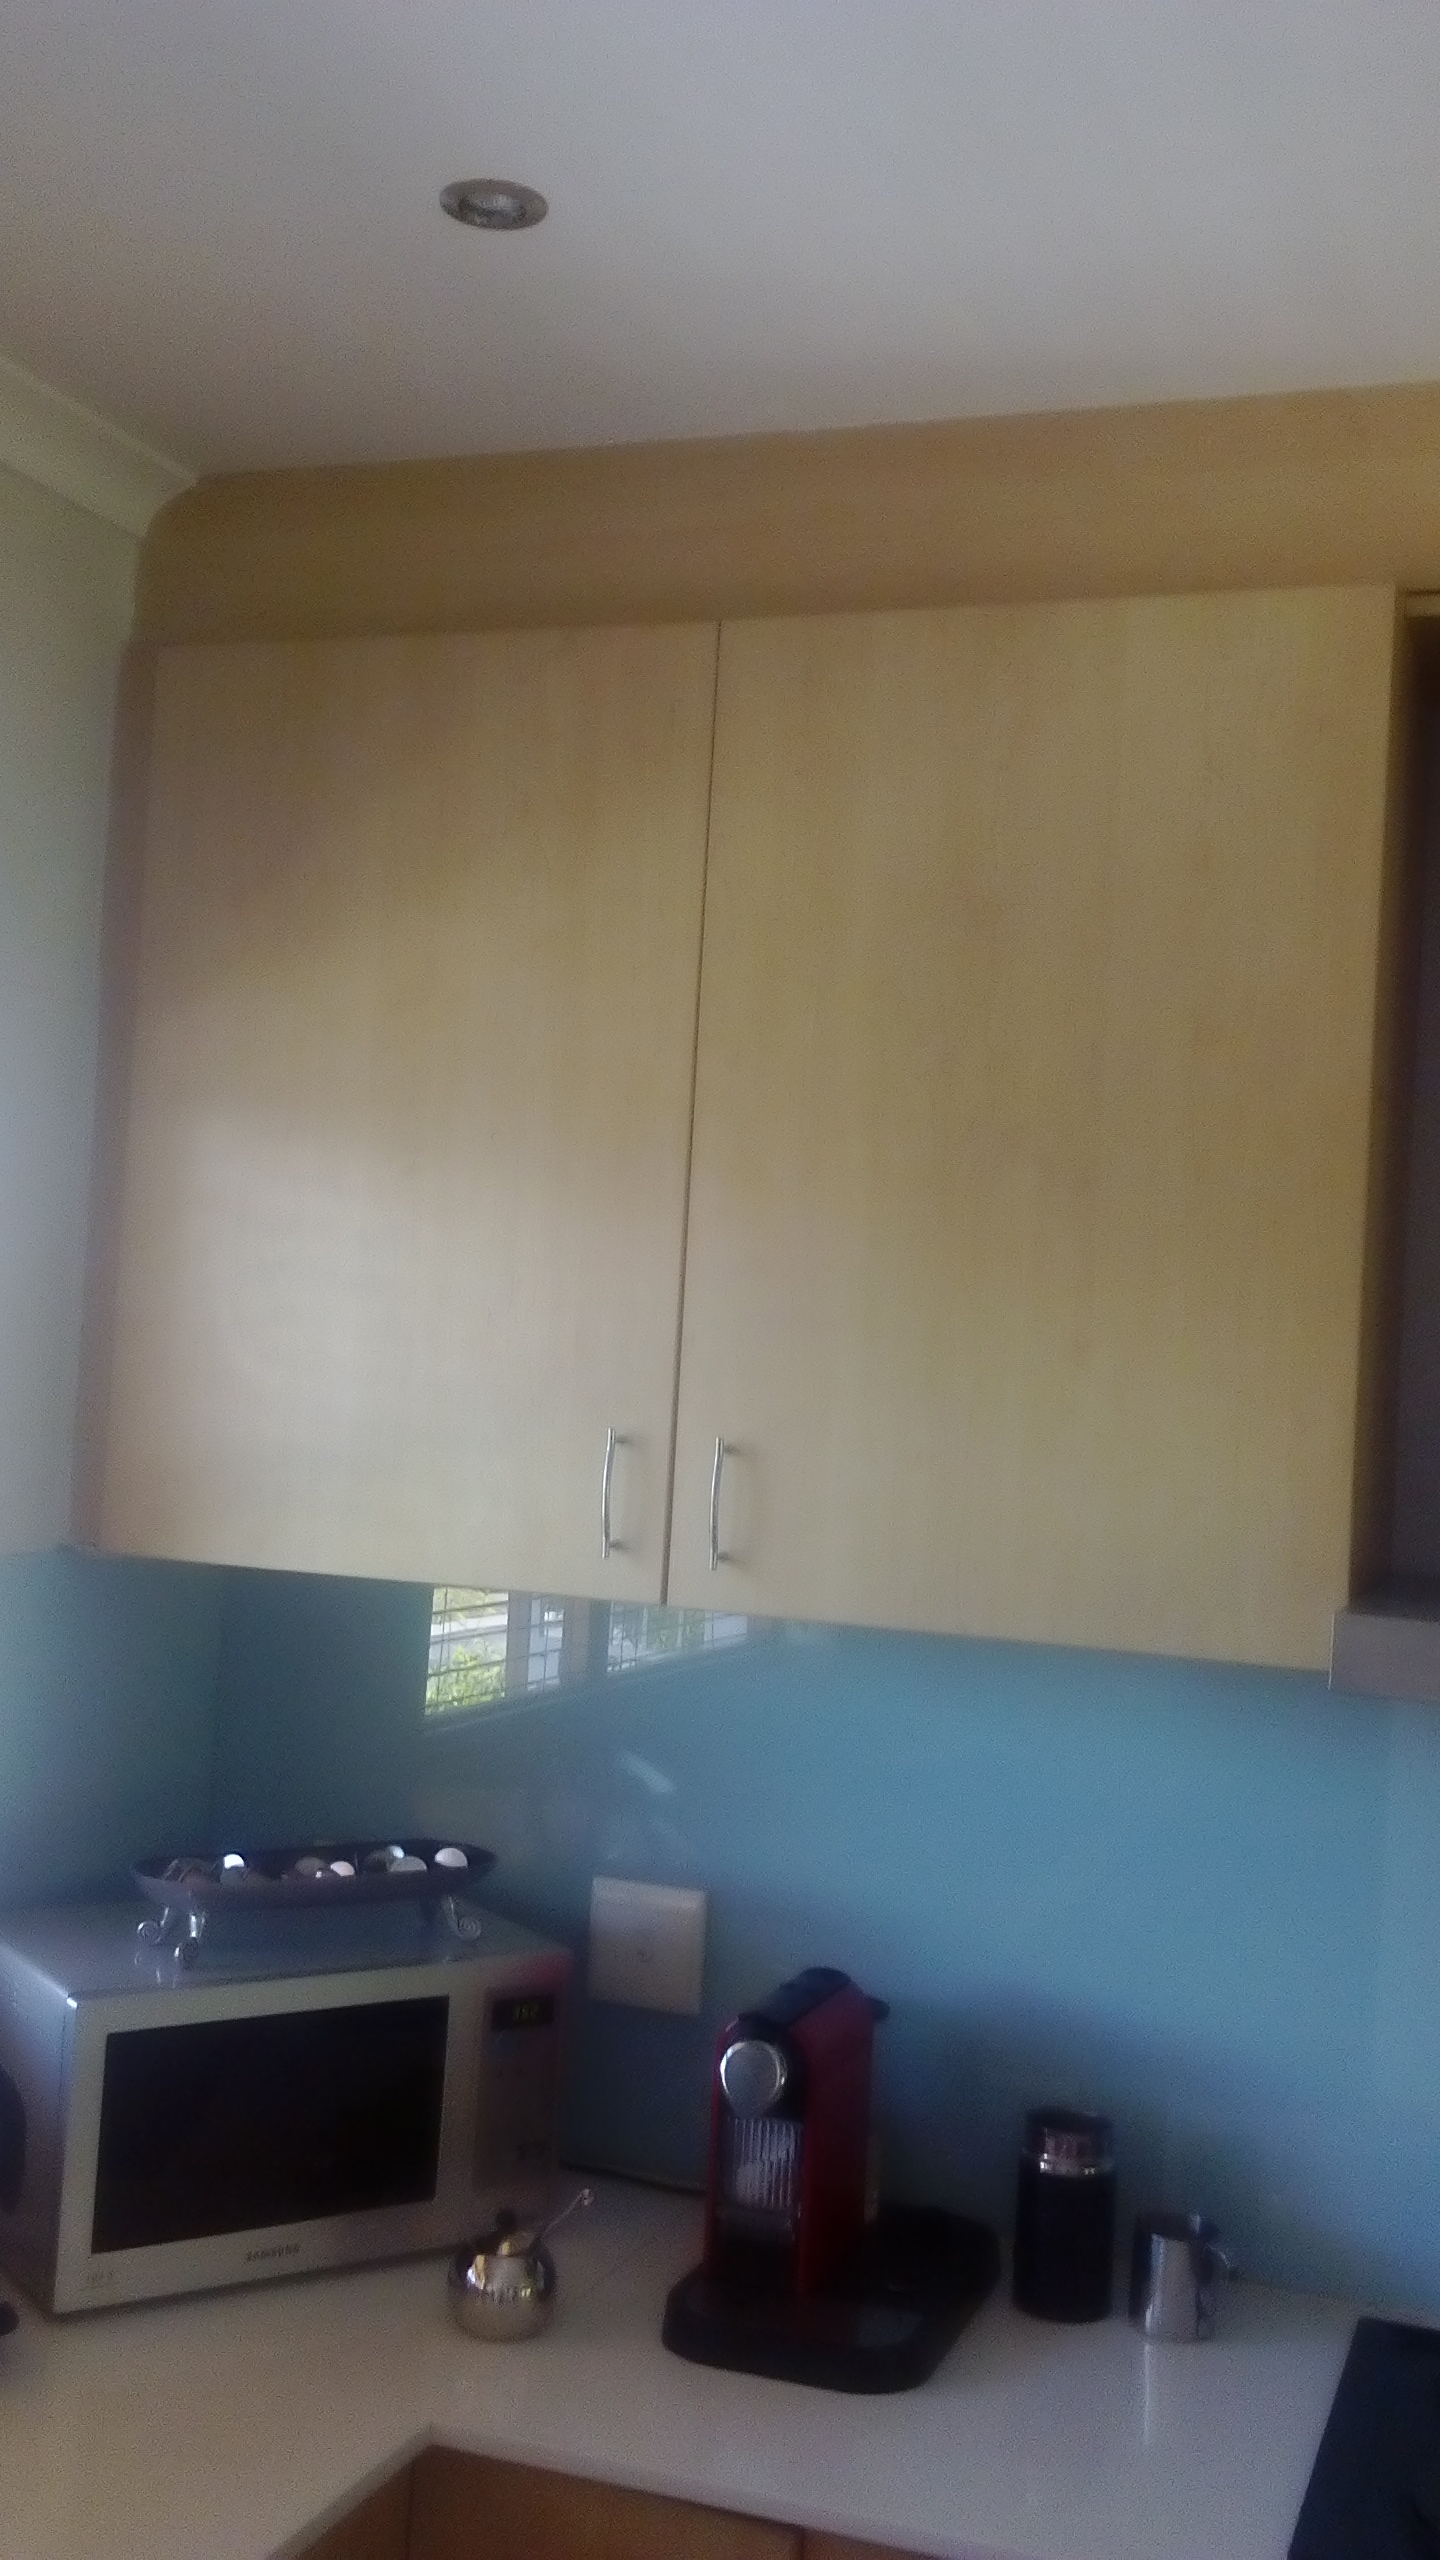 Kitchen Cupboard DOORS only (no structure)